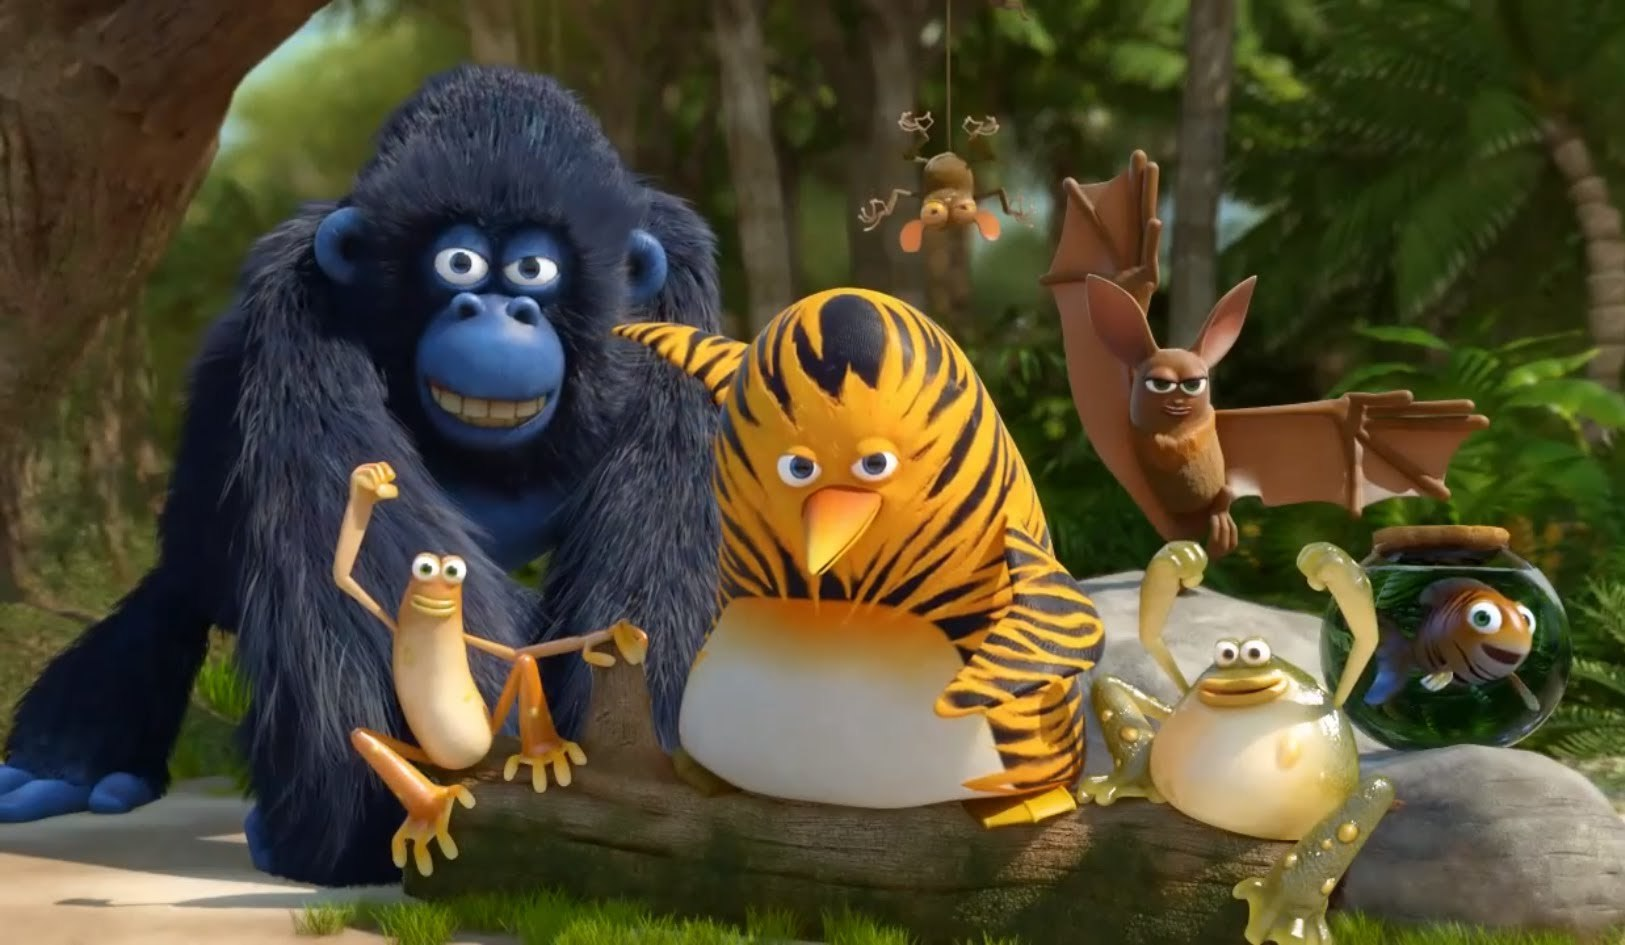 Pgs Announces Sales Of The Jungle Bunch To The Rescue